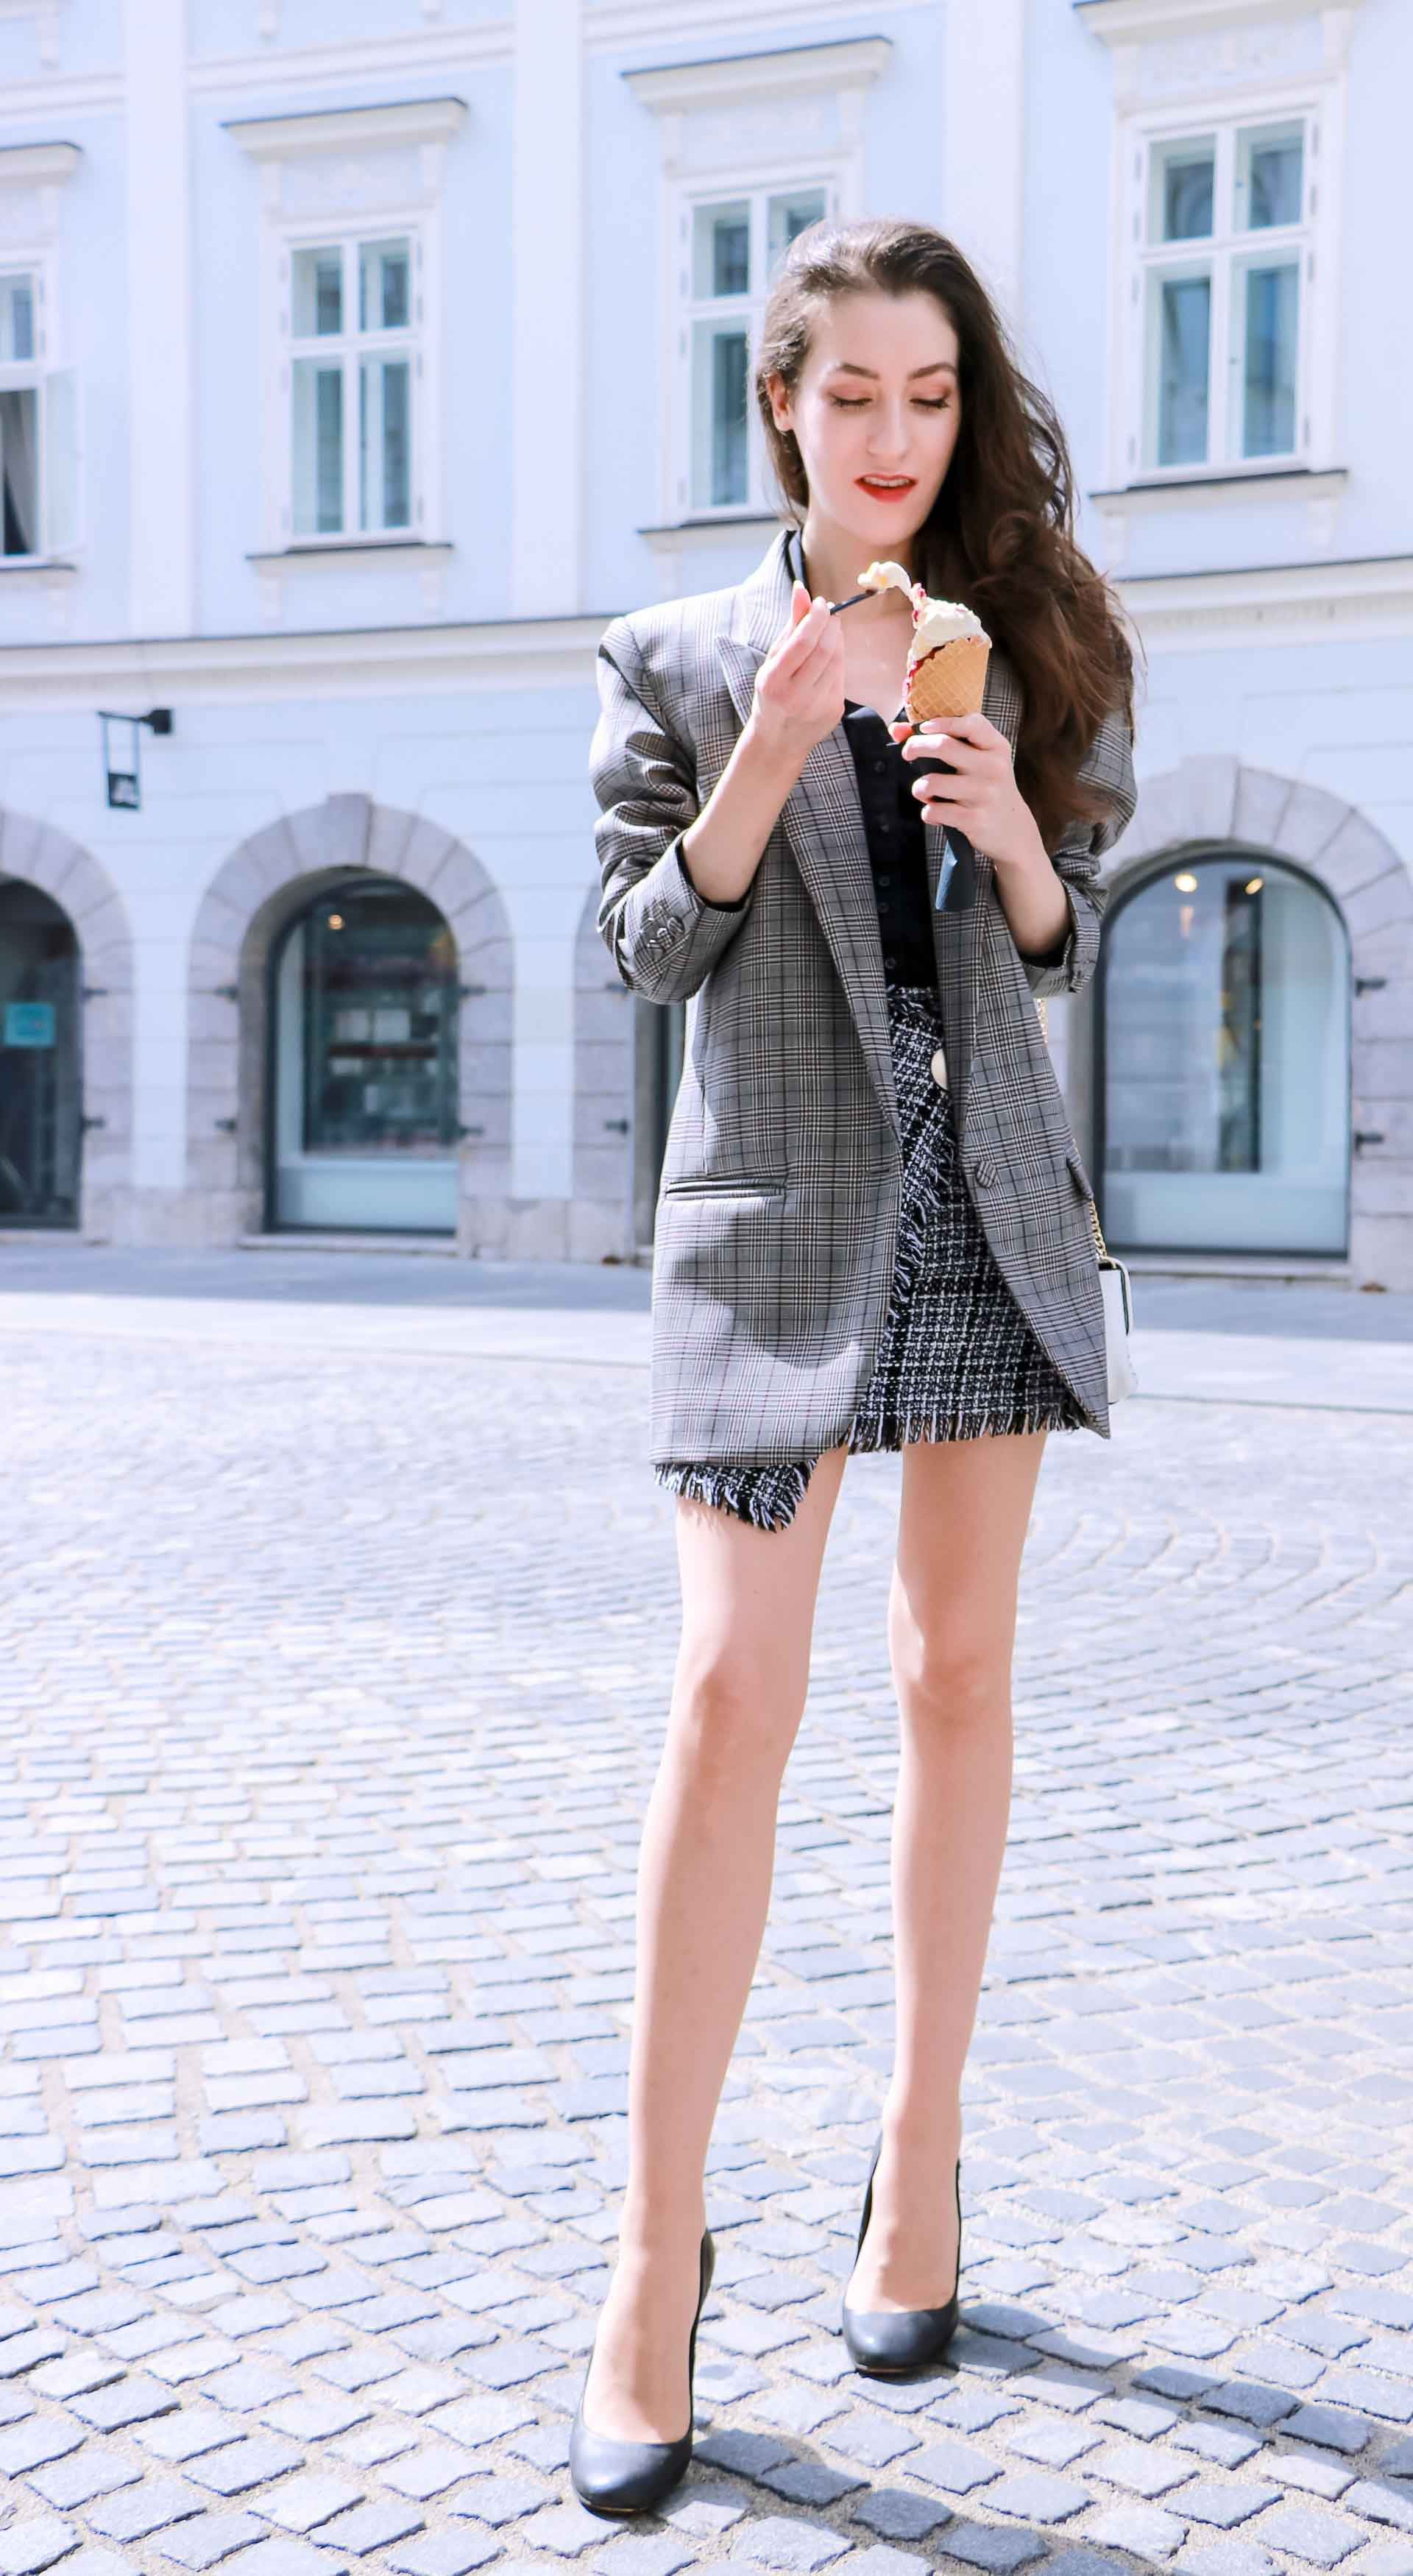 Fashion Blogger Veronika Lipar of Brunette from Wall Street dressed in Erika Cavallini oversized boyfriend plaid blazer with short tweed black and white mini skirt from streets, black pumps and white chain strap shoulder bag while eating ice cream in sugar cone